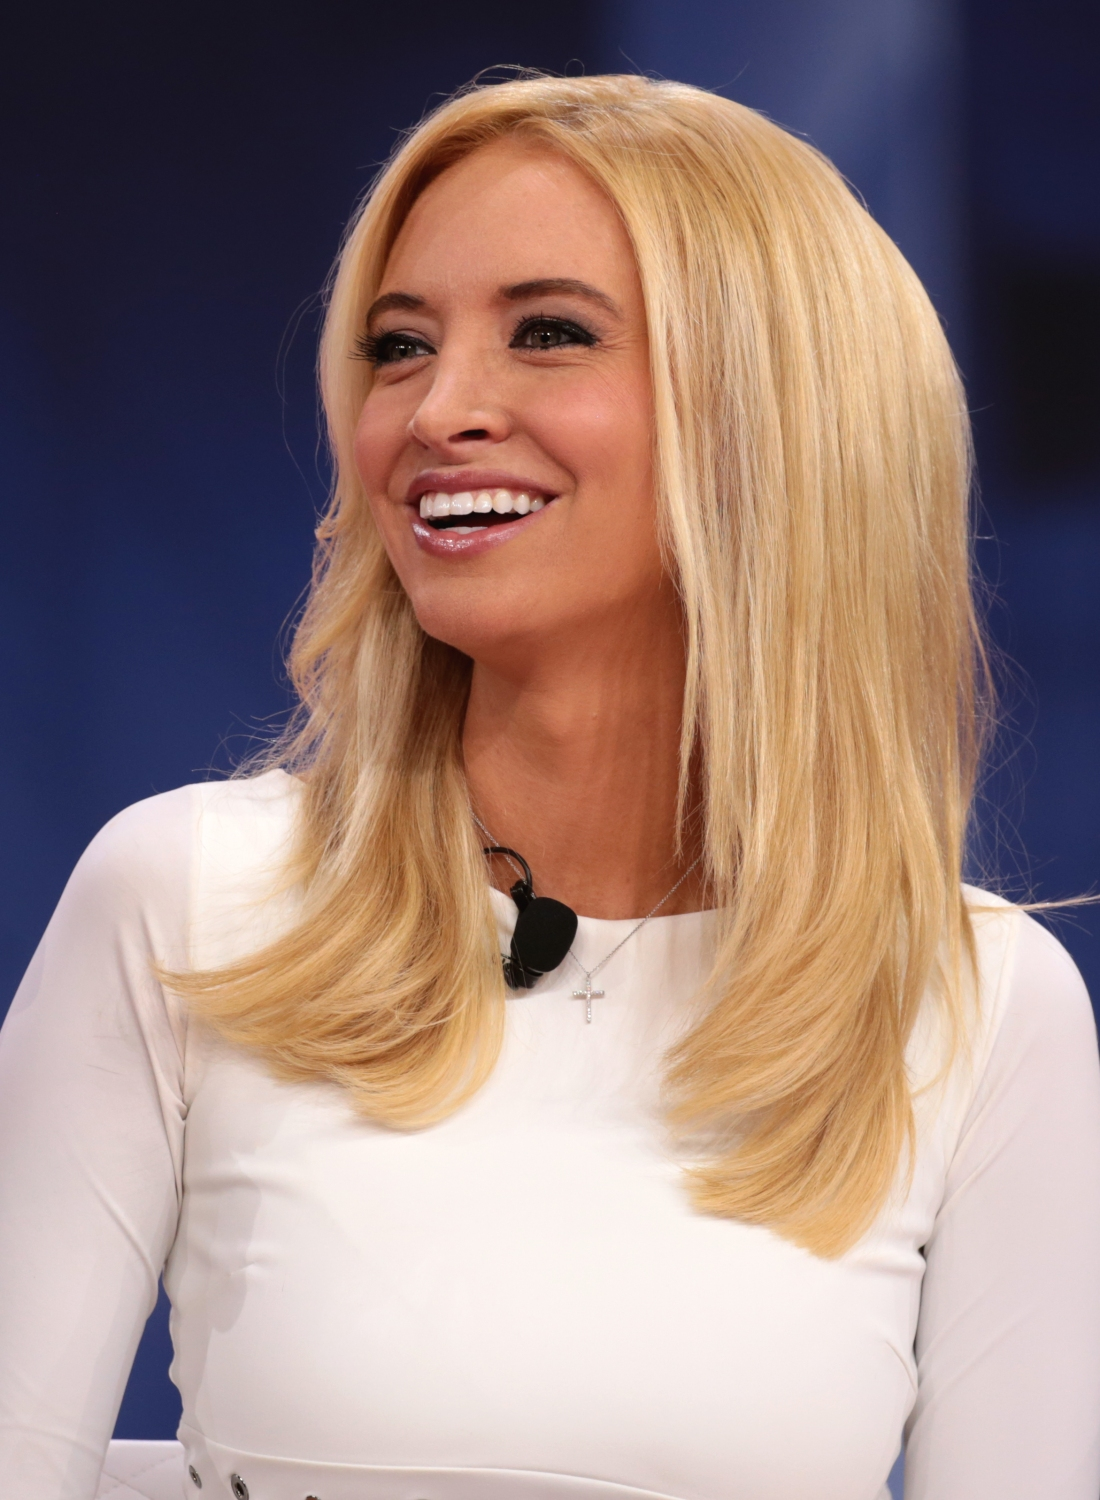 Kayleigh_McEnany_(39645264535)_(cropped)